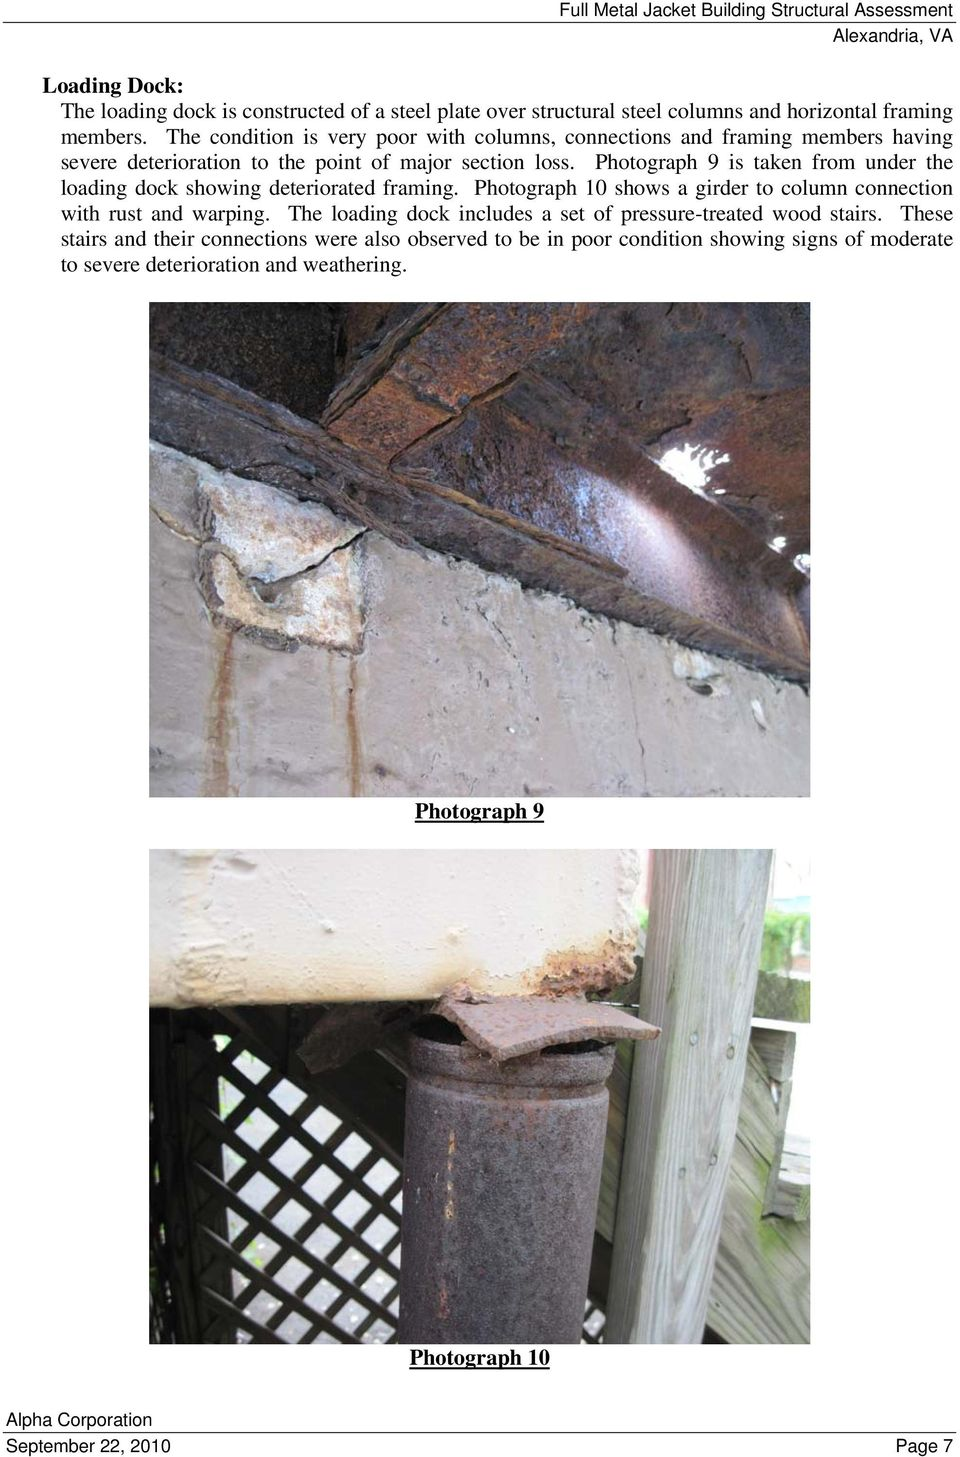 Photograph 9 is taken from under the loading dock showing deteriorated framing. Photograph 10 shows a girder to column connection with rust and warping.